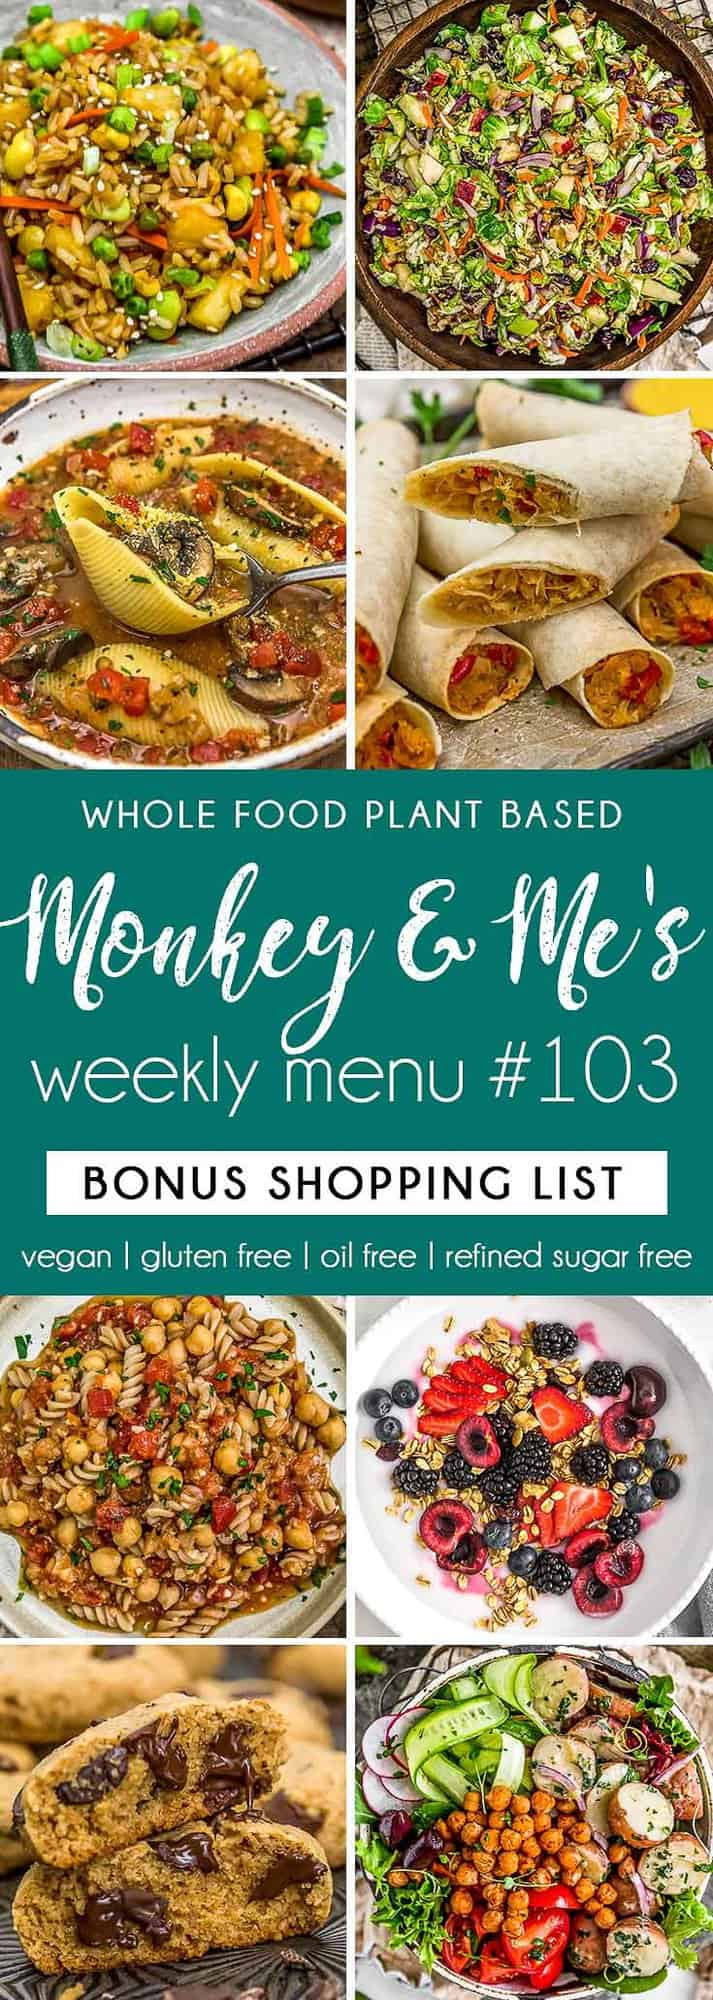 Monkey and Me's Menu 103 featuring 8 recipes